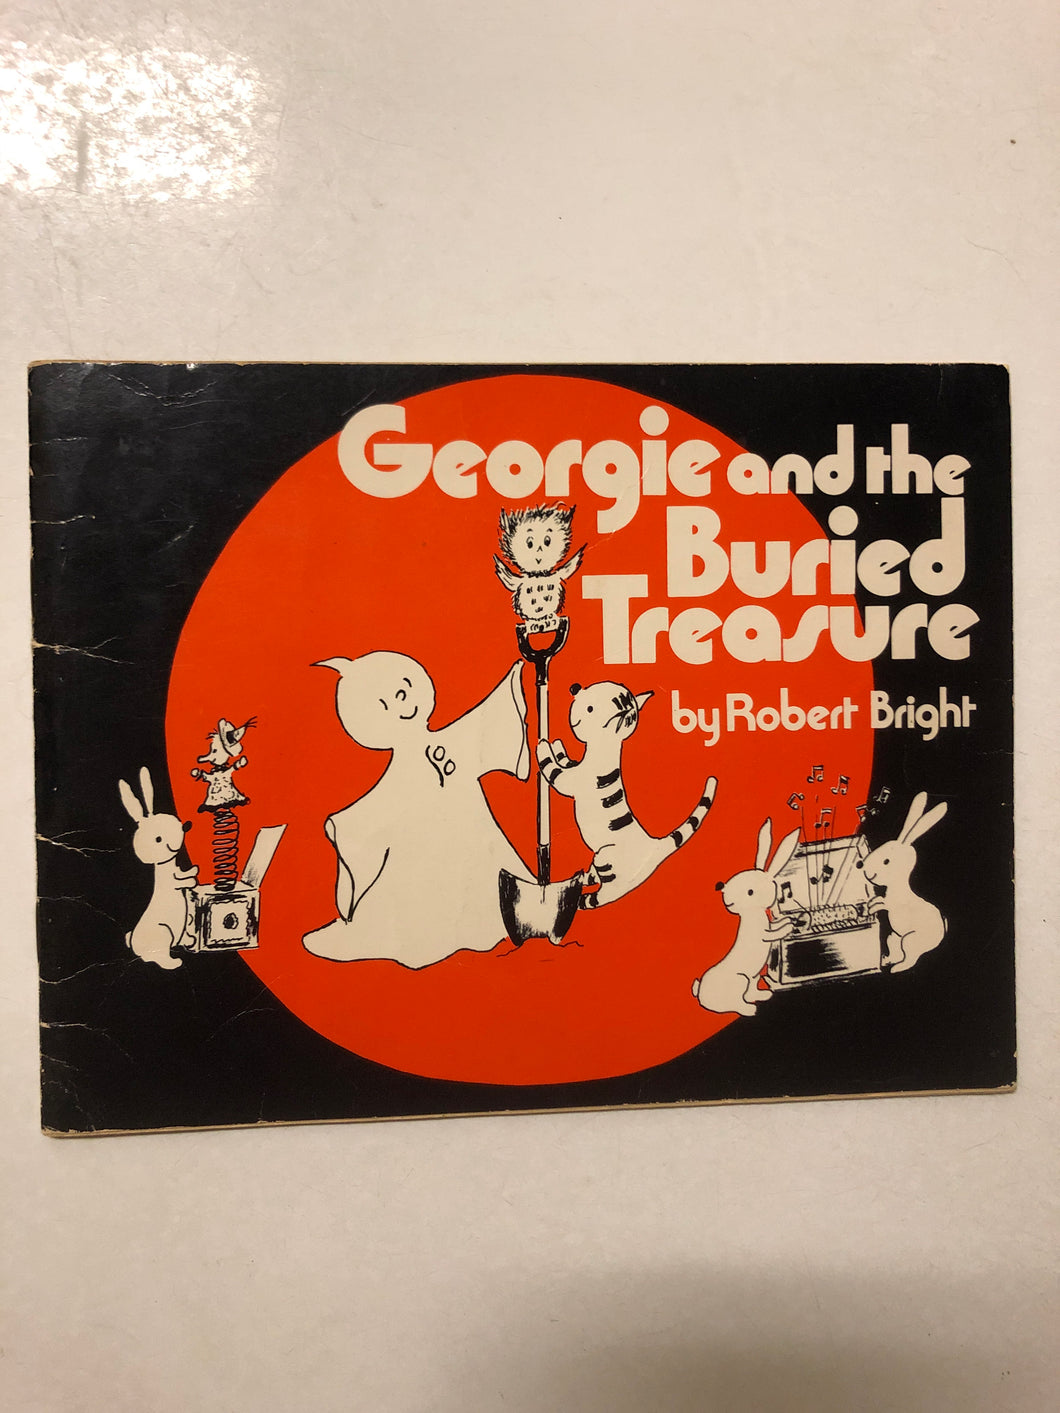 Georgie and the Buried Treasure - Slick Cat Books